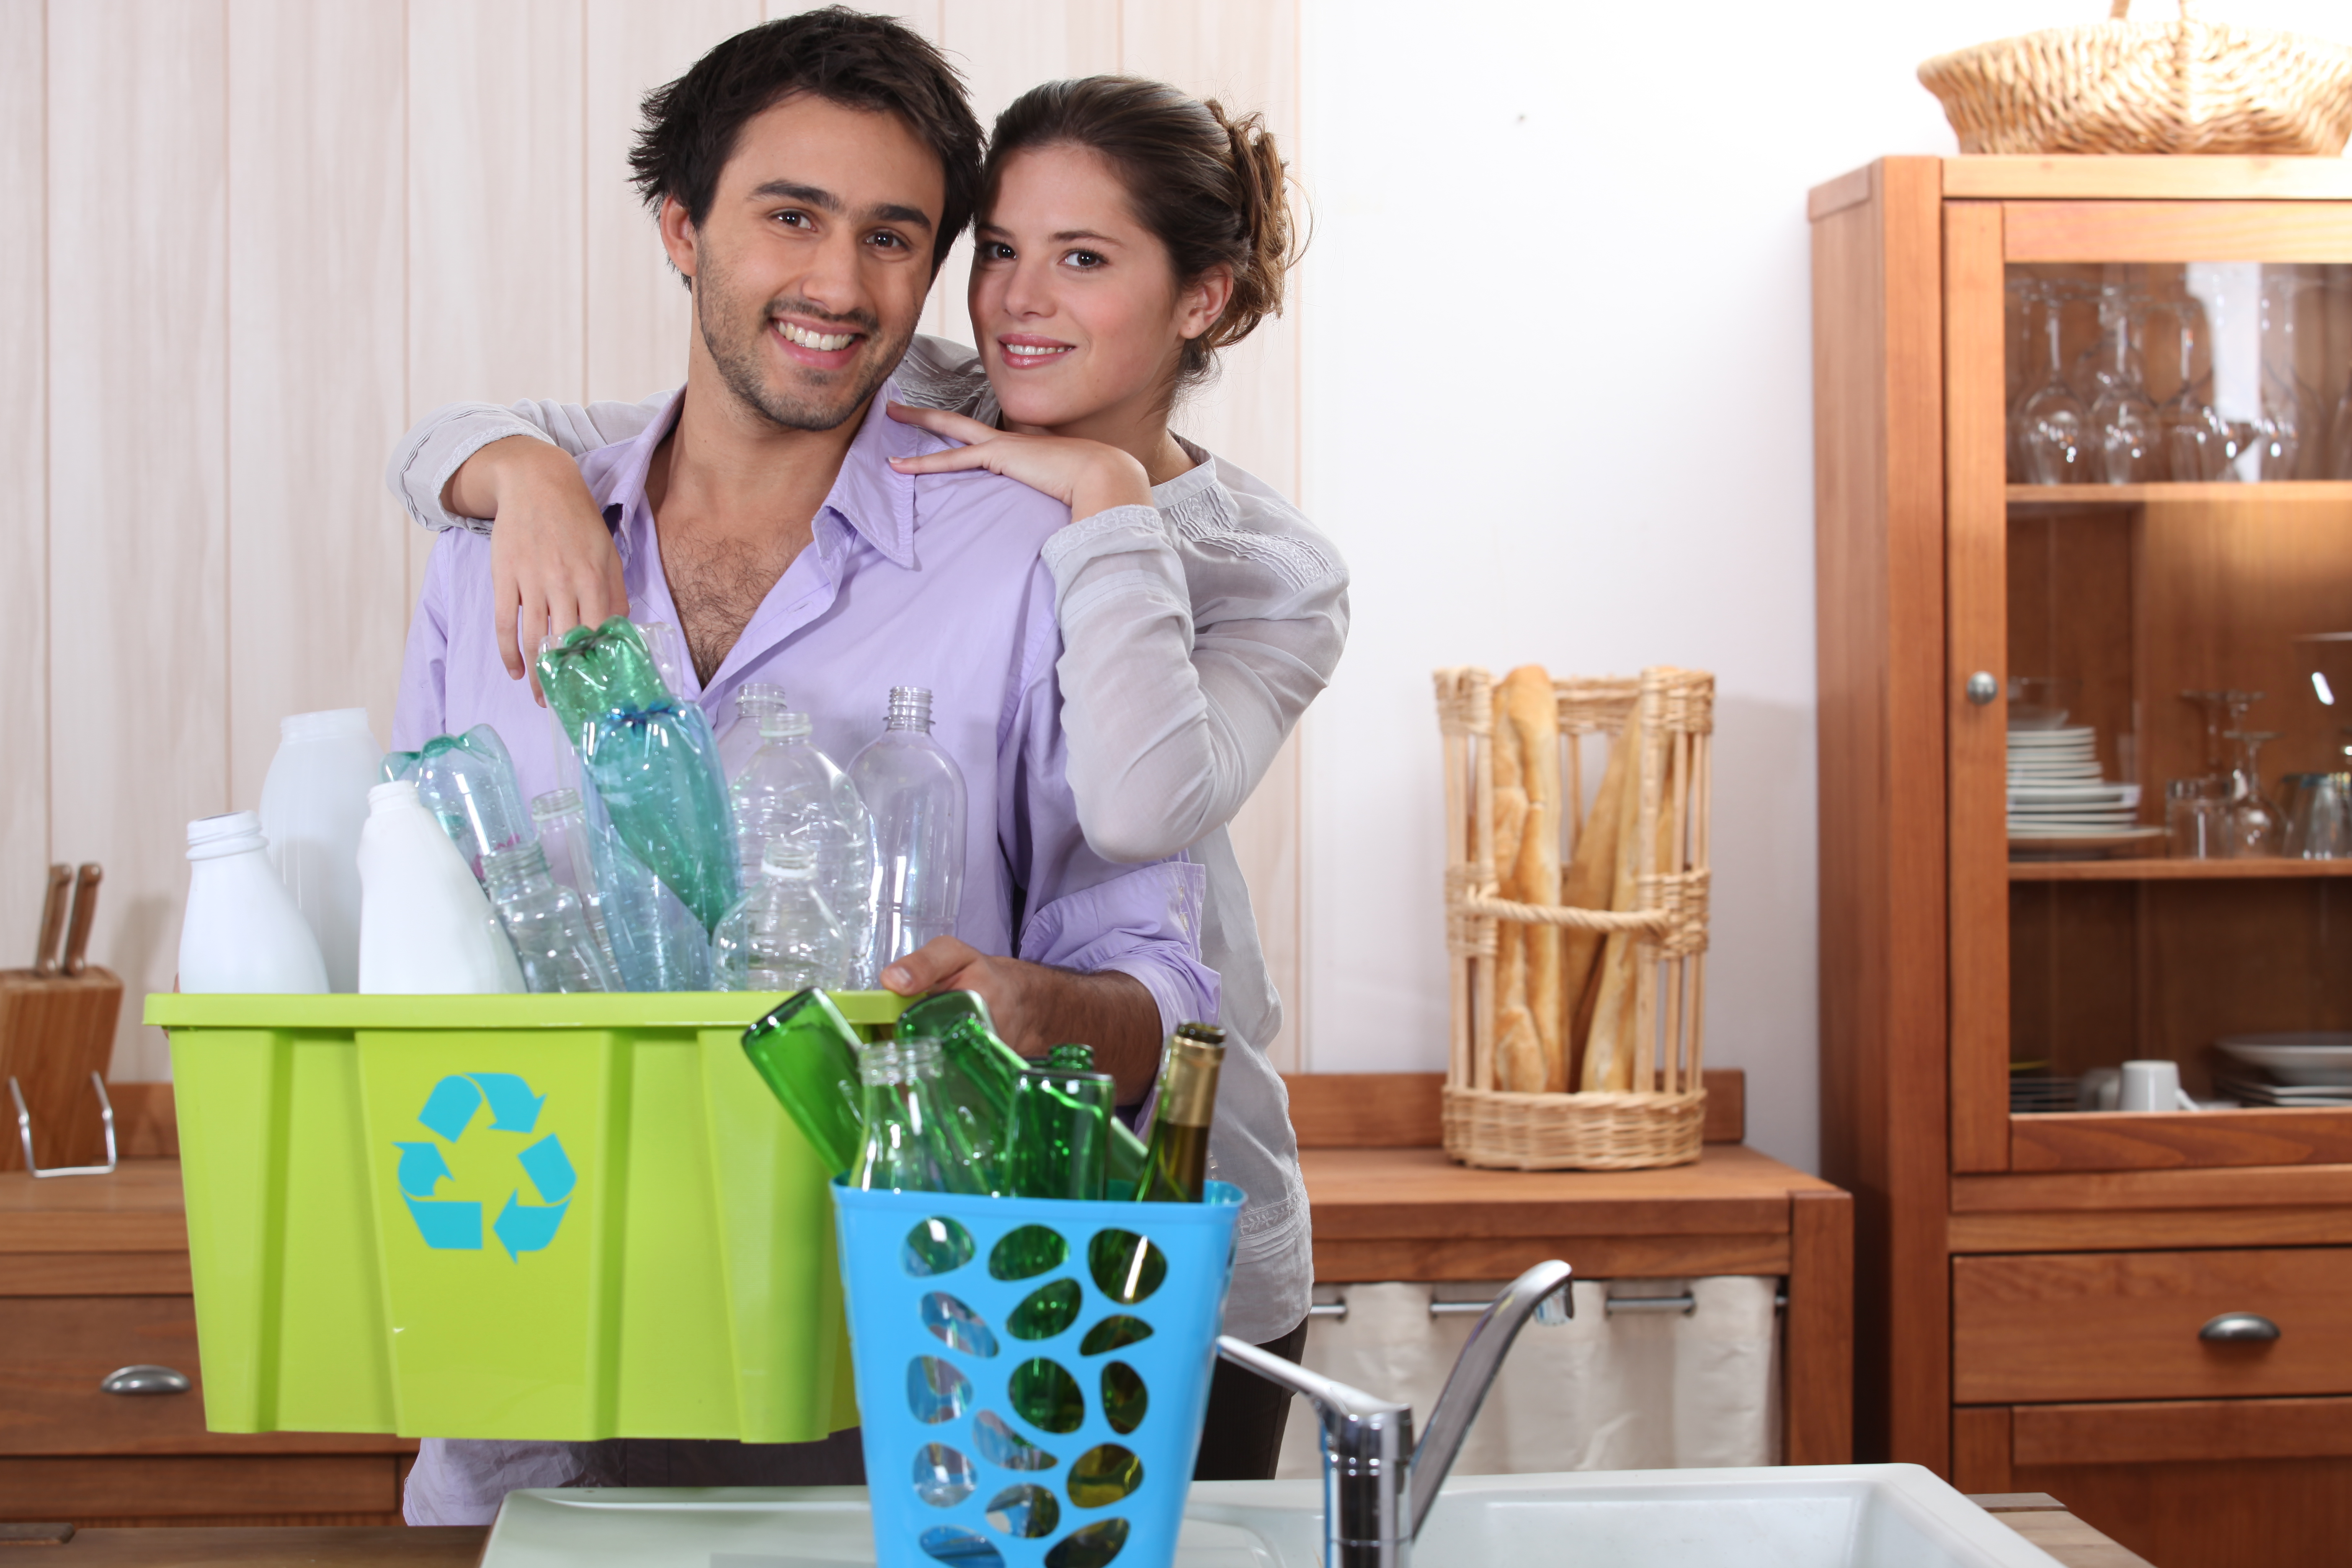 Making Room With The Help Of A House Clearance Company